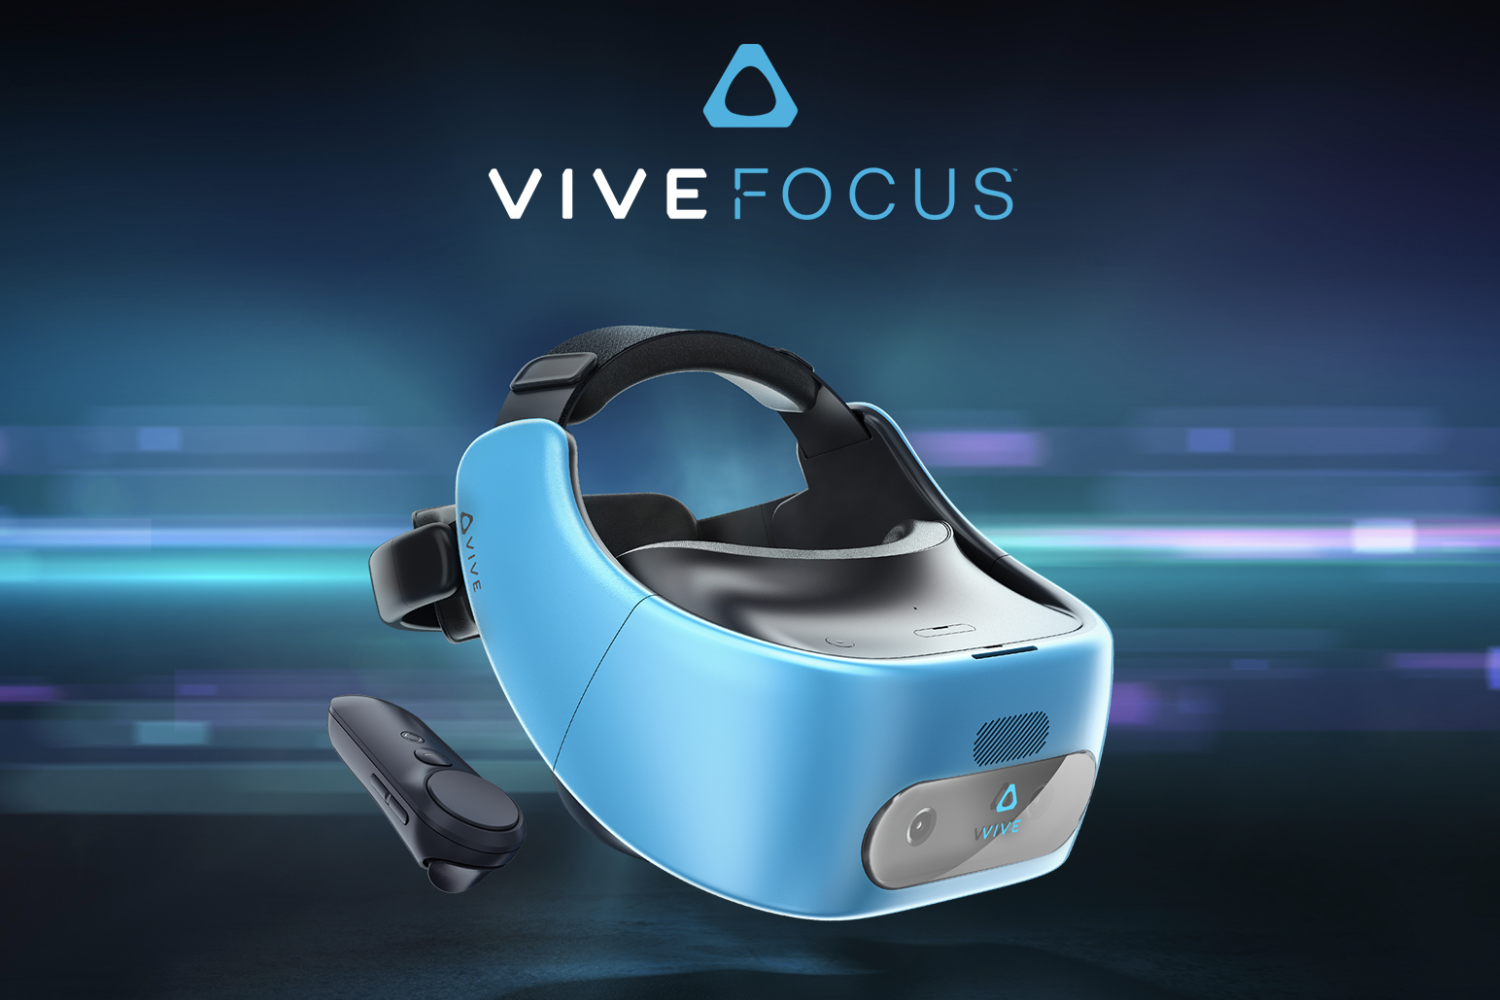 Playing 3D Videos on HTC Vive Focus